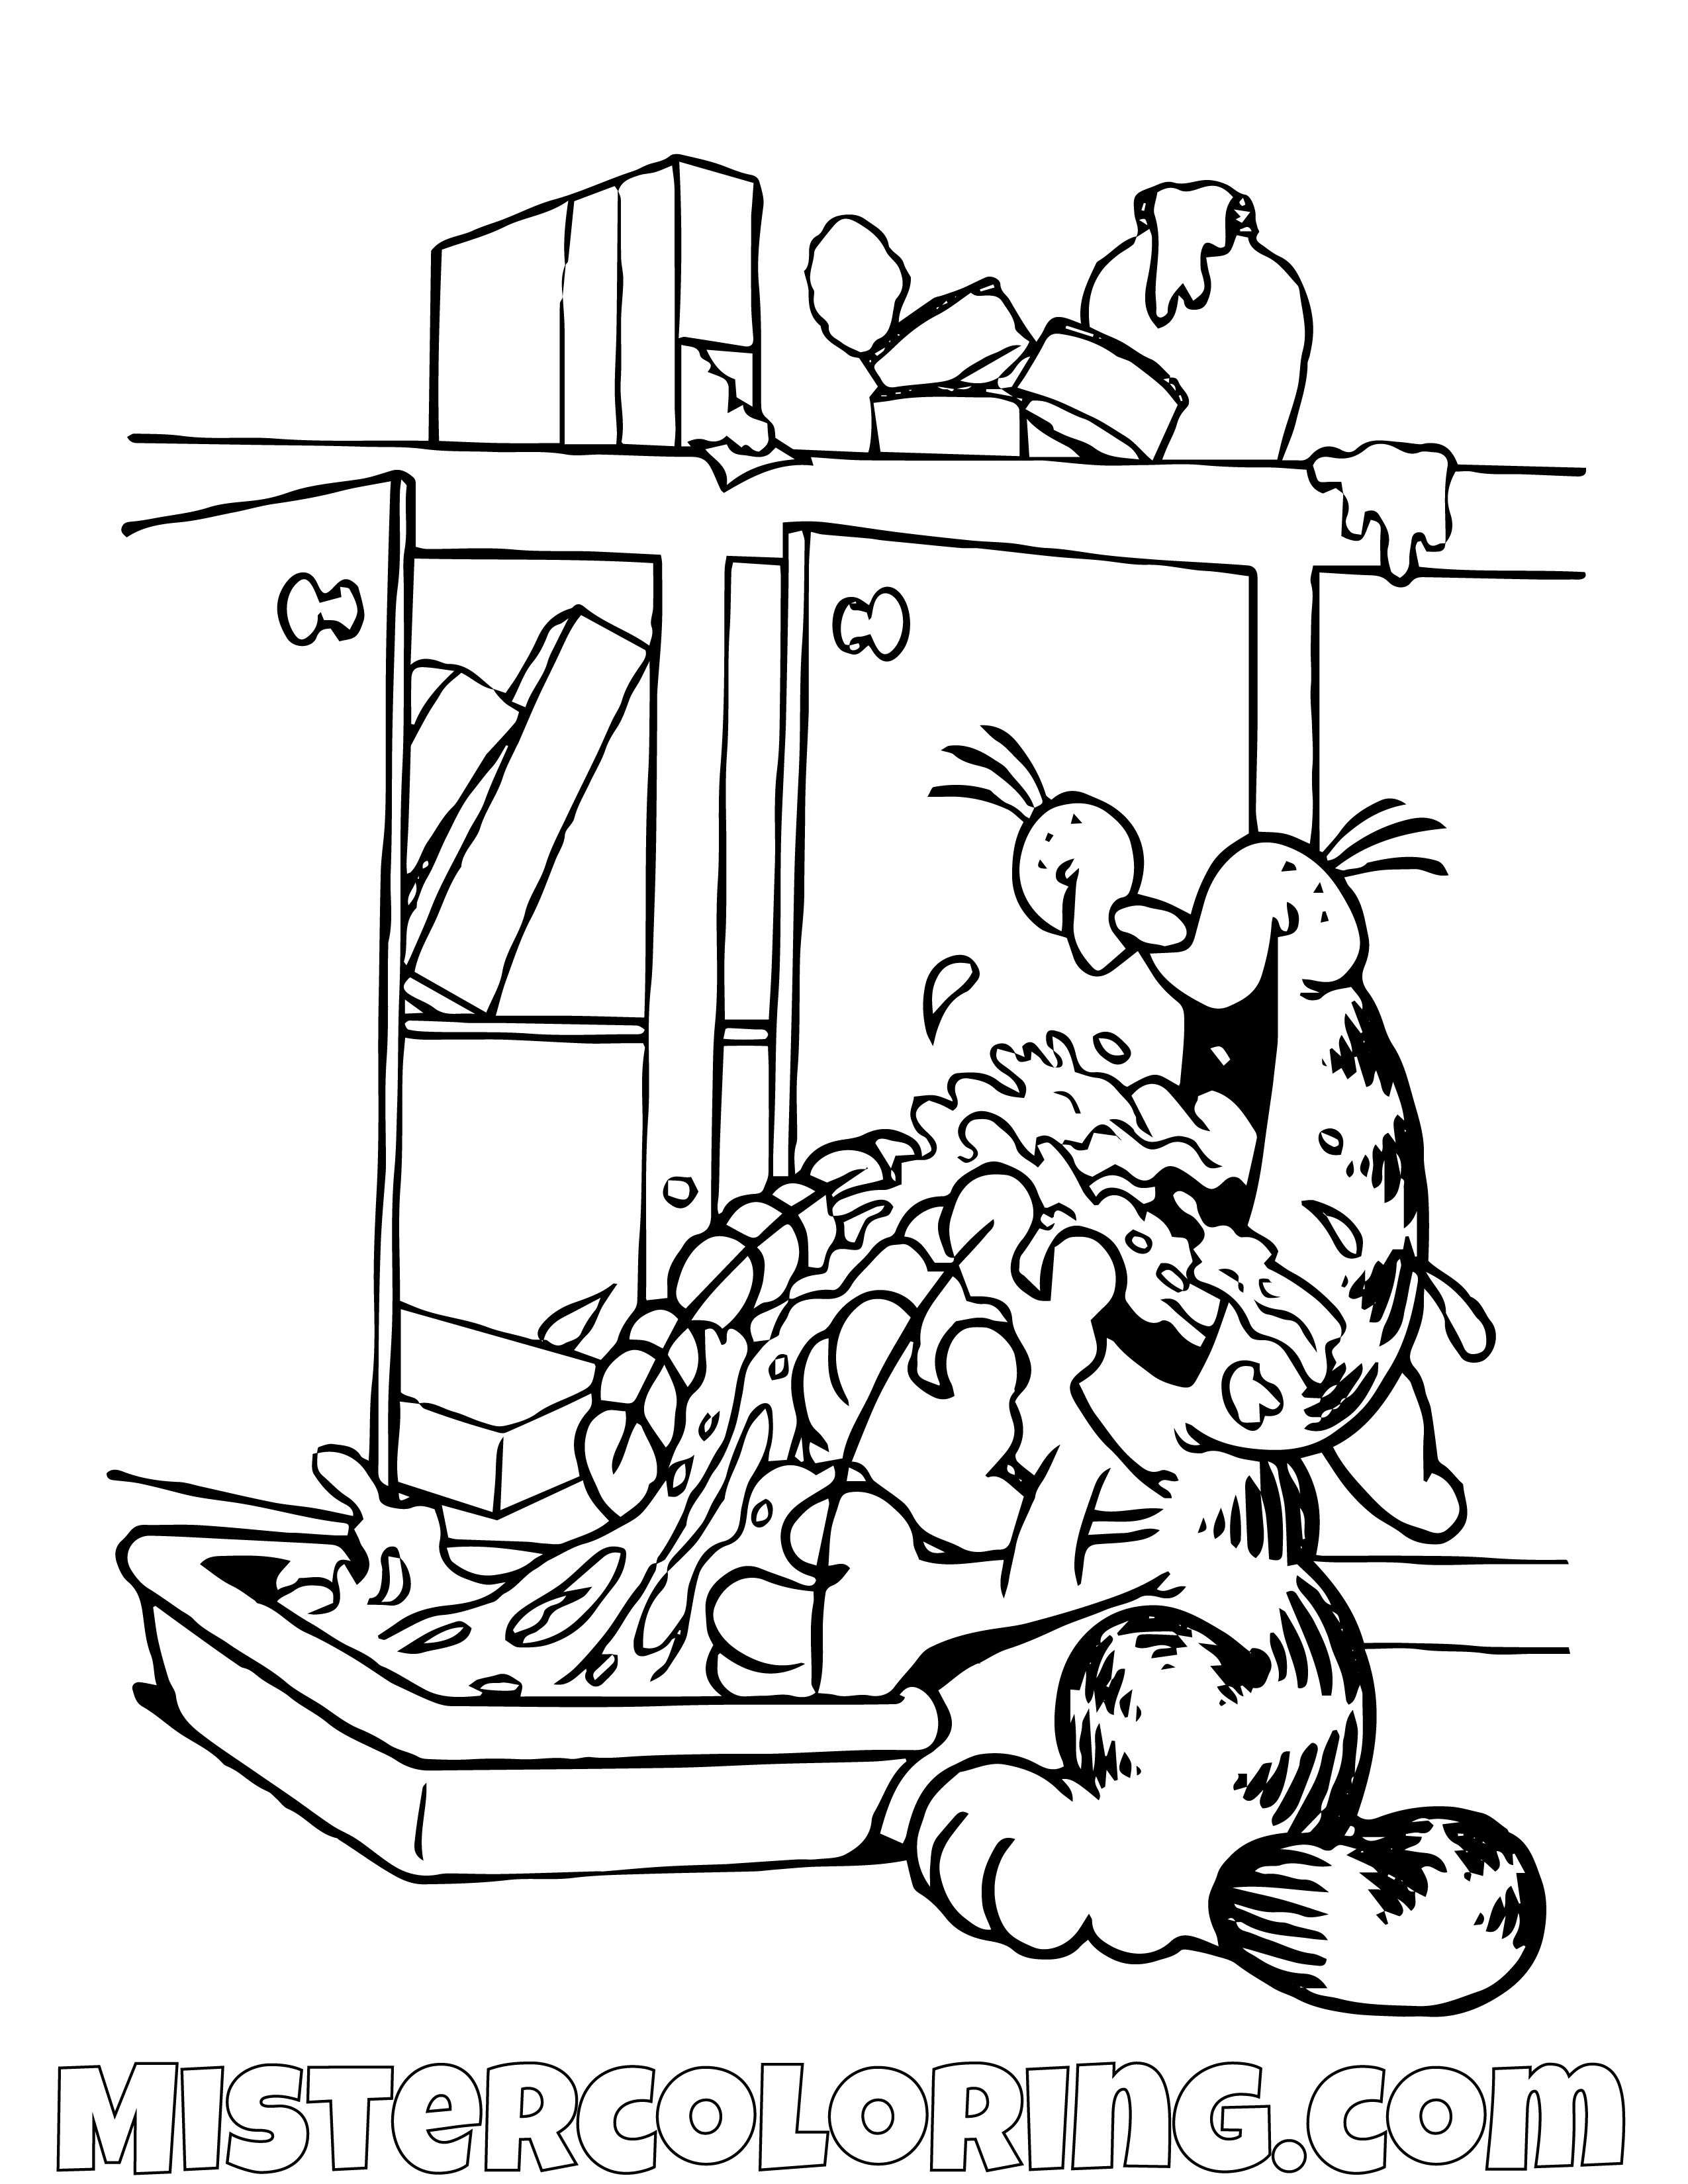 Garfield Coloring Pages For Kids Https Mistercoloring Com Garfield Coloring Pages Pirate Coloring Pages Coloring Pages Cartoon Coloring Pages